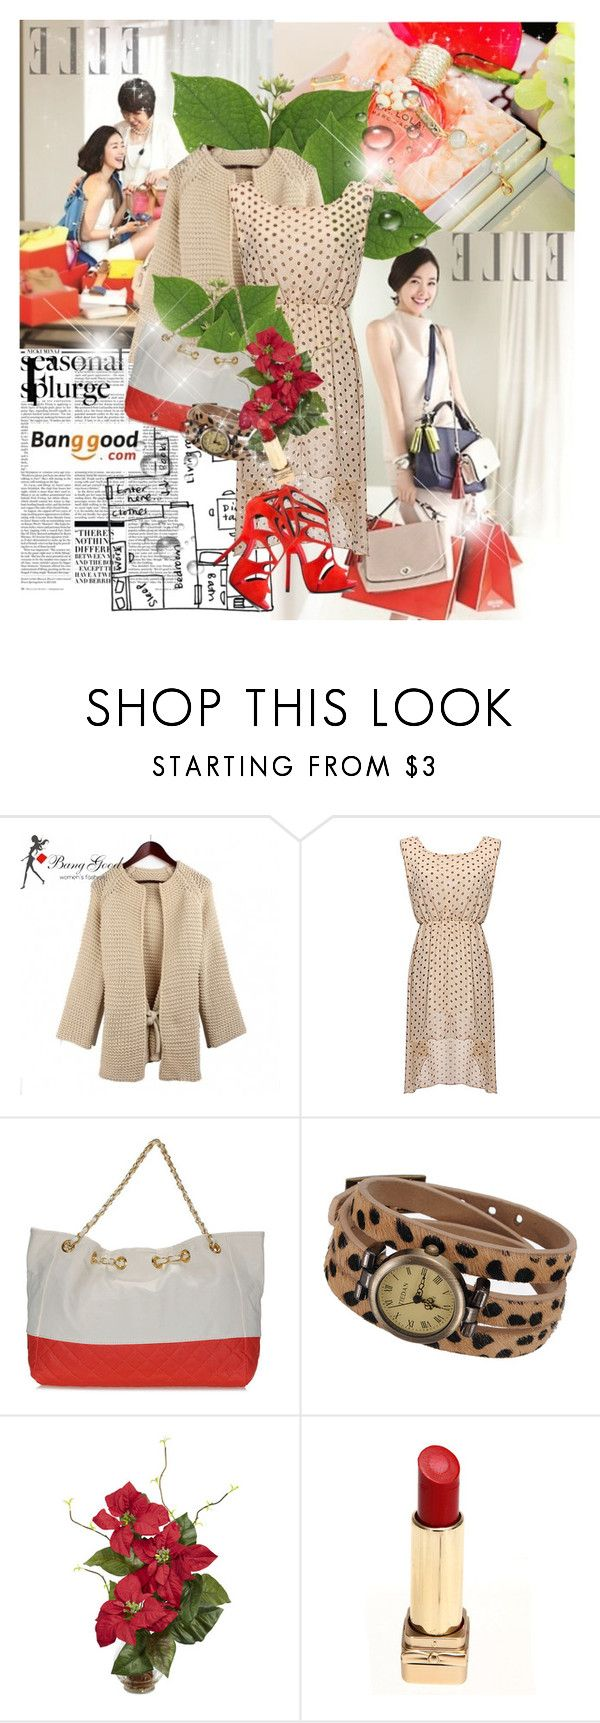 """""""A Mother's Gift <3"""" by advent68 ❤ liked on Polyvore featuring Nicki Minaj, Prada, Nearly Natural, Giuseppe Zanotti and vintage"""